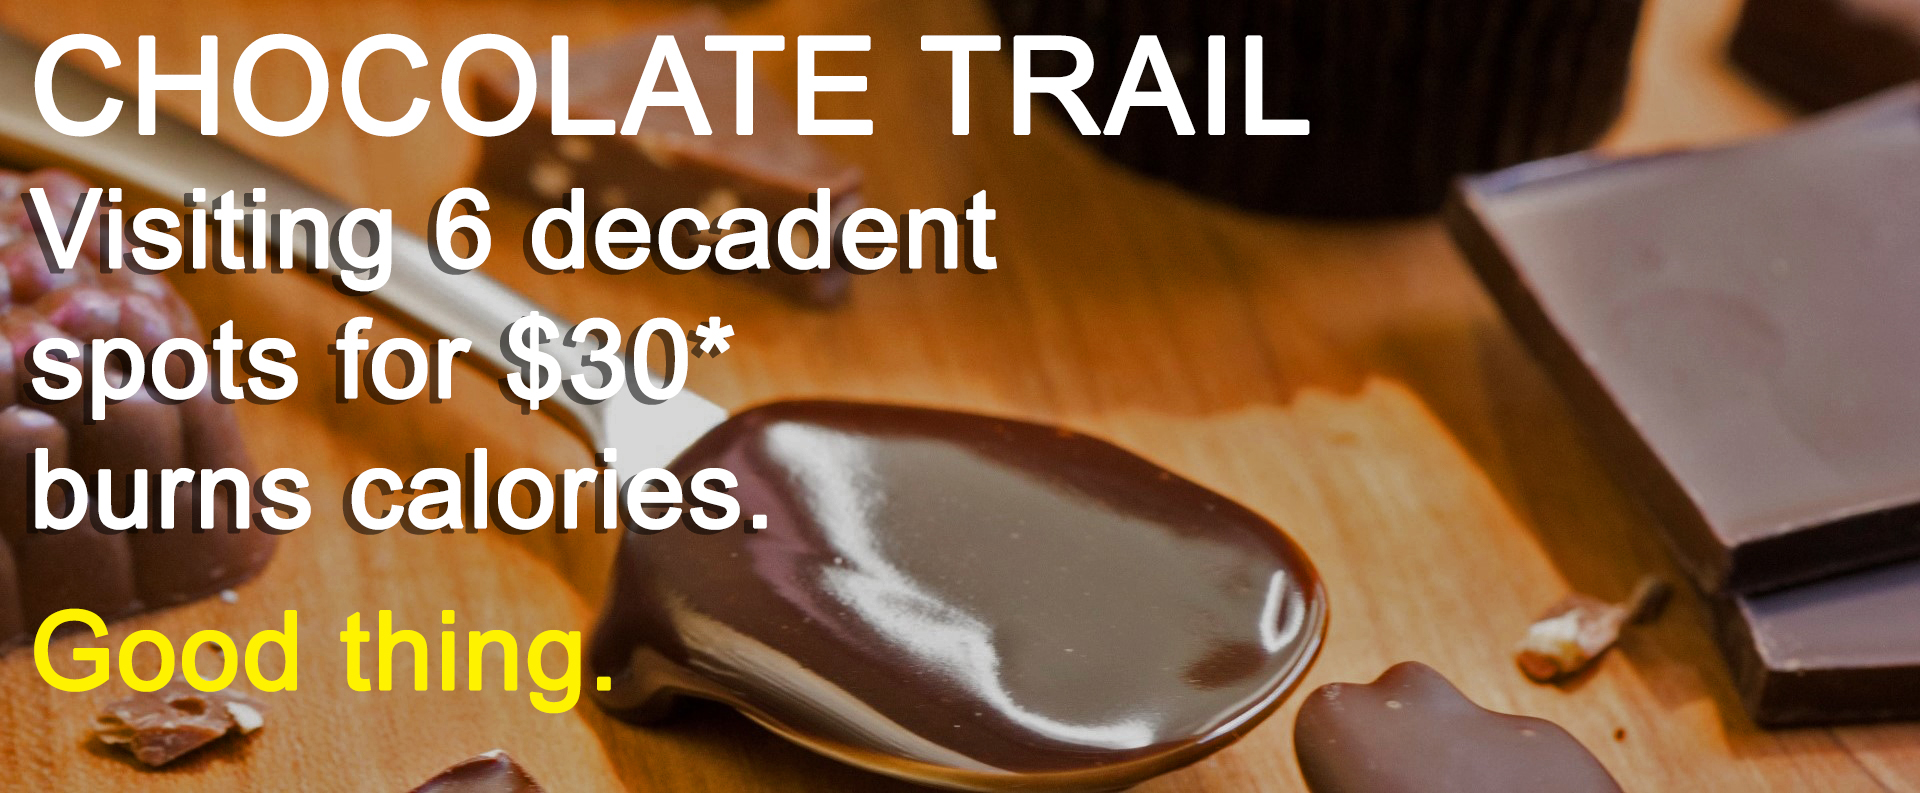 Stratford Chocolate Trail